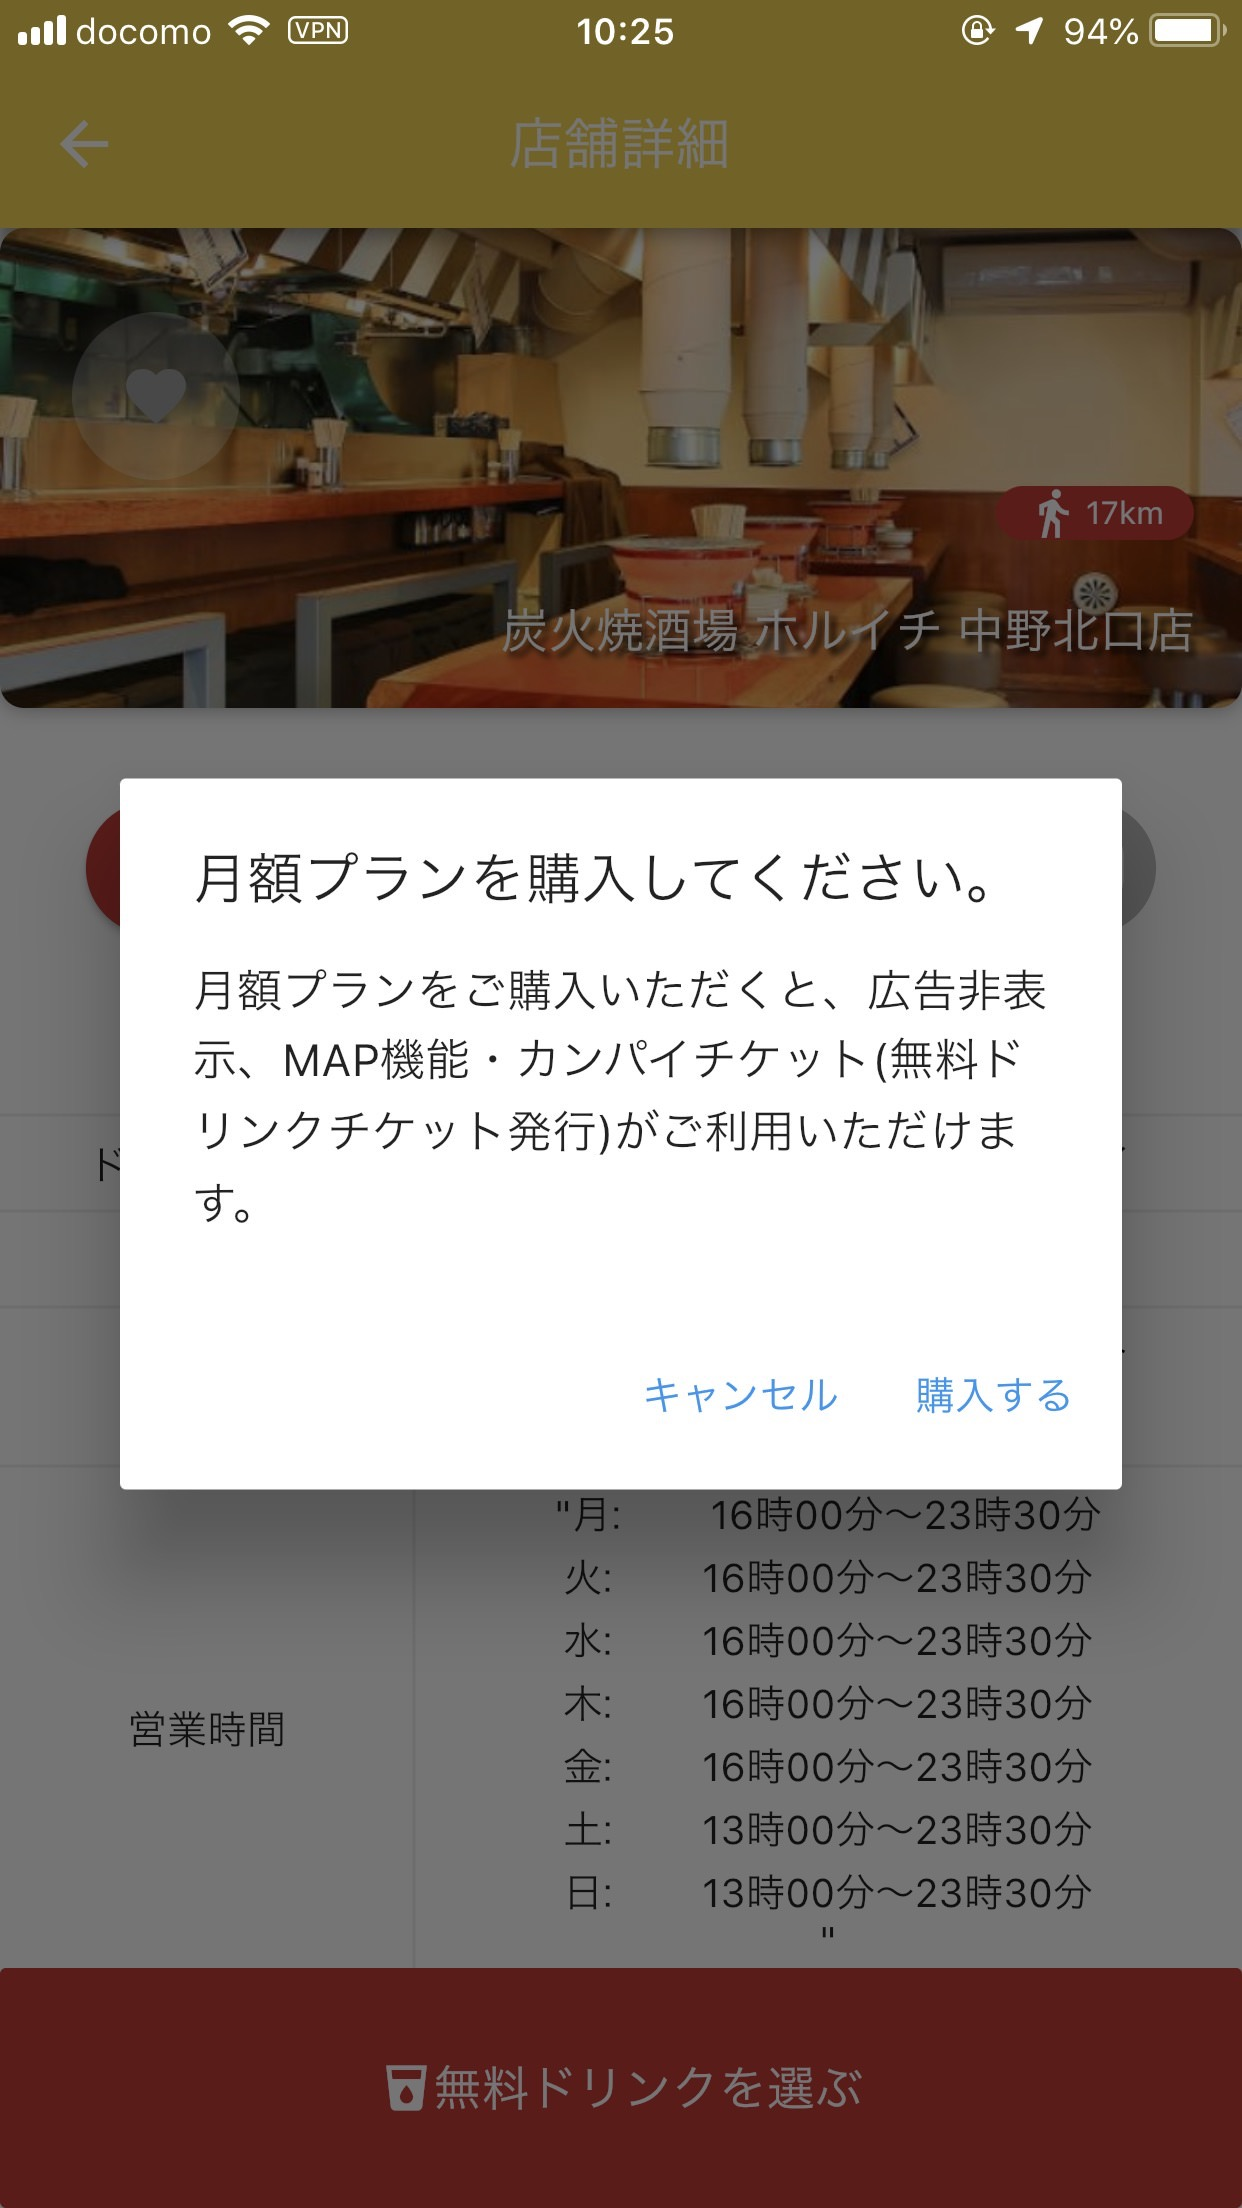 【iOS/Android】月額500円で毎日乾杯ドリンクが呑める飲食店検索アプリ「nomocca(のもっか)」 5